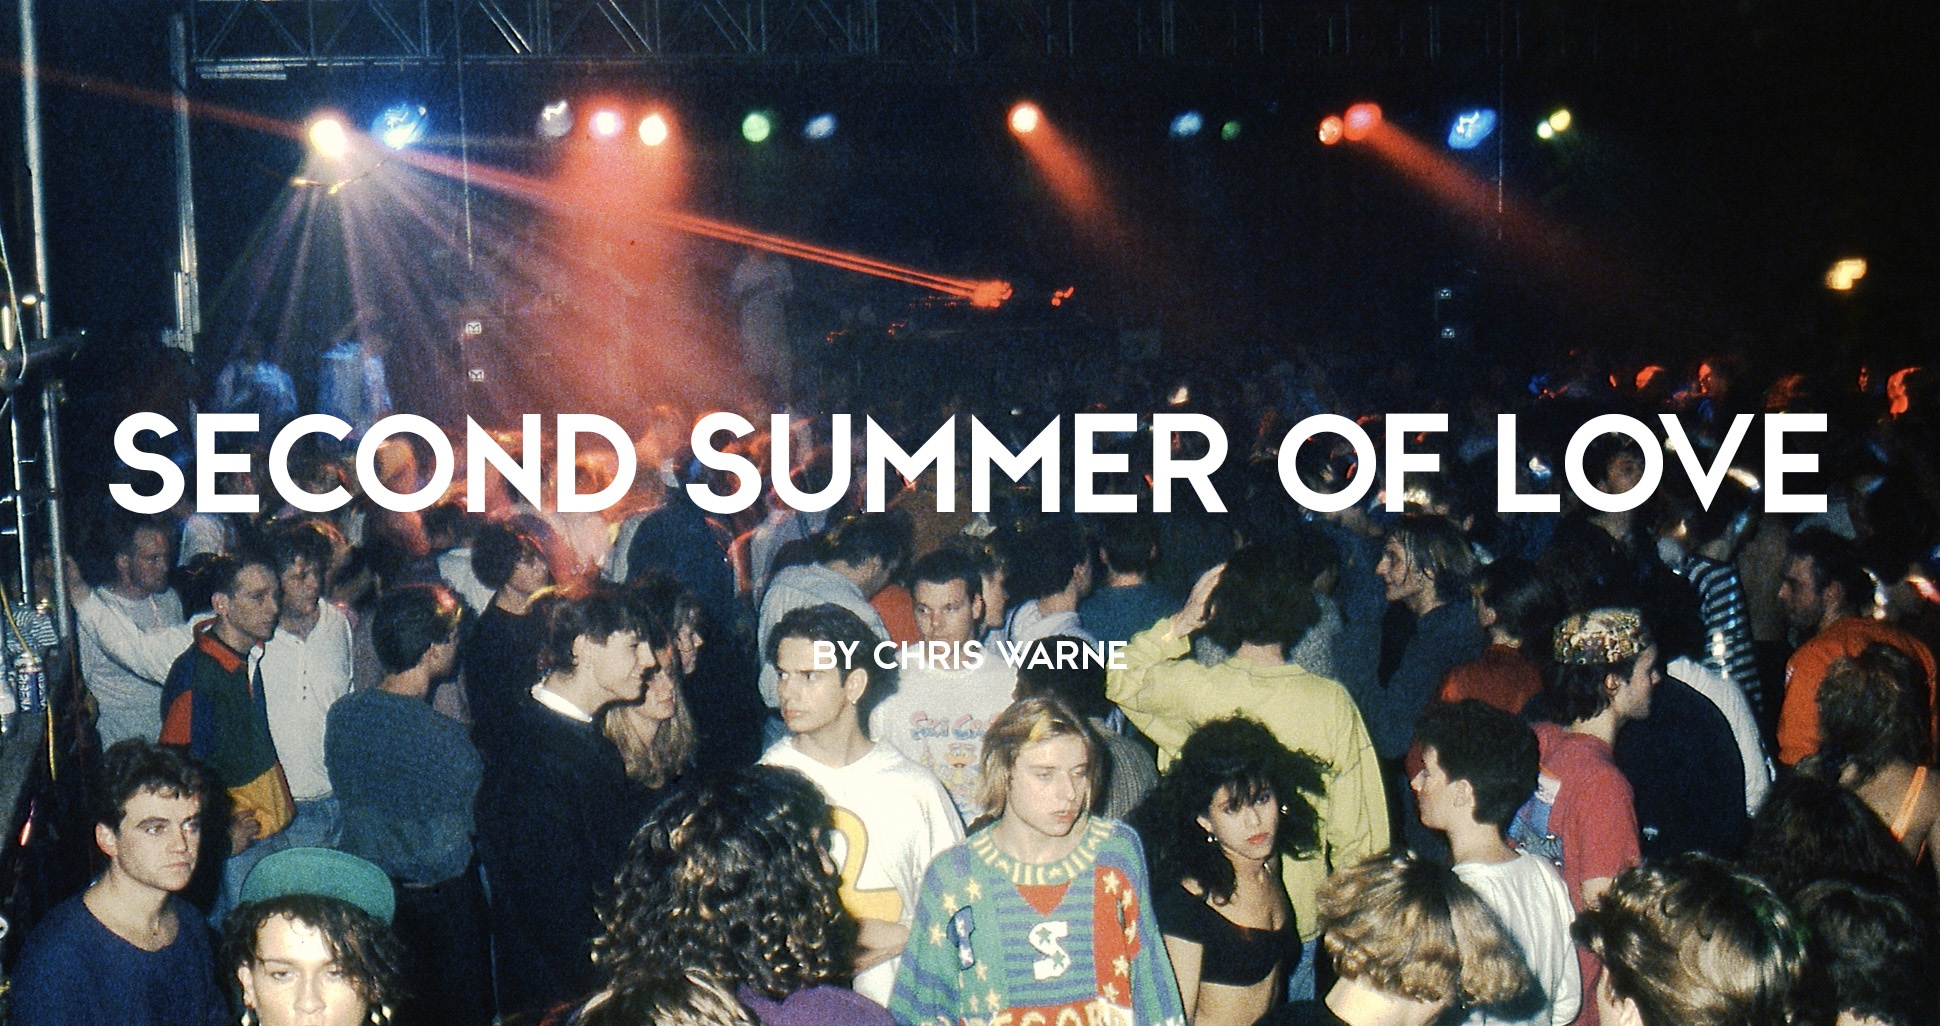 Rave crowd an underground warehouse rave during the second summer of love, 1980s by Gavin Watson